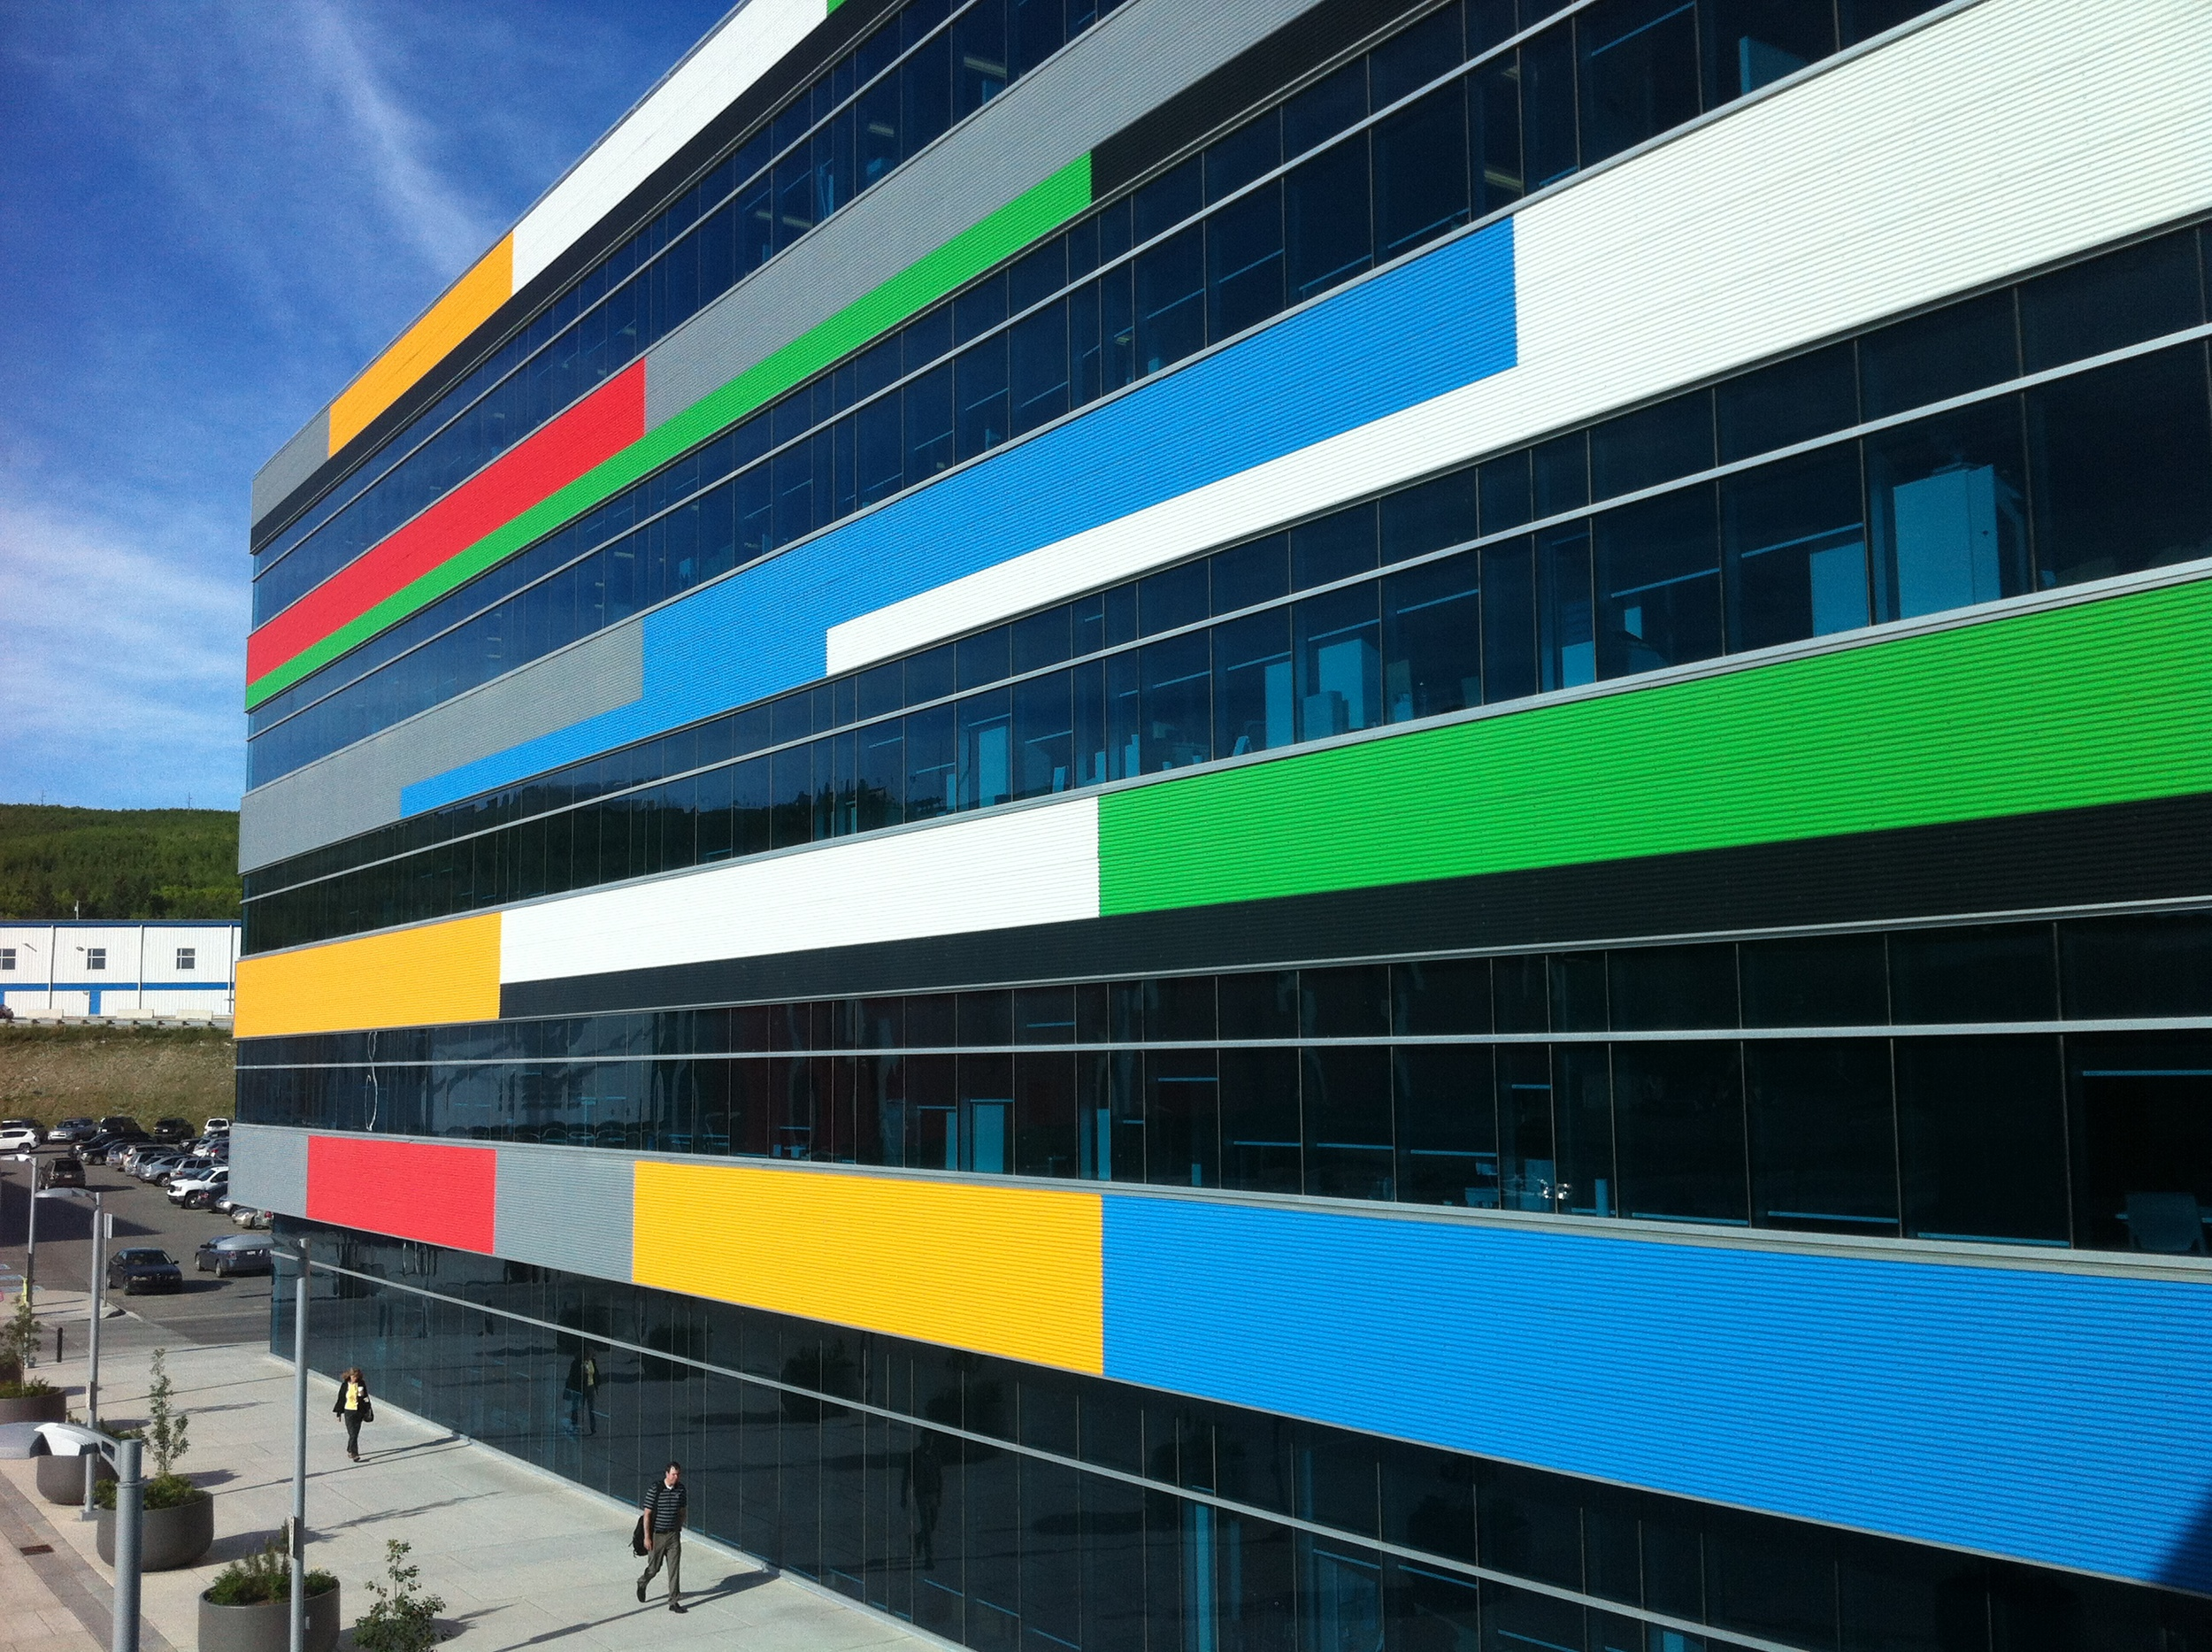 Some of Calgary's most colourful and fun architecture is hidden from view, like this office building at Canada Olympic Park.  Imagine if this building was along the 7th Avenue Transit corridor or along 9th Avenue as a gateway into downtown.  This makes a fun statement.